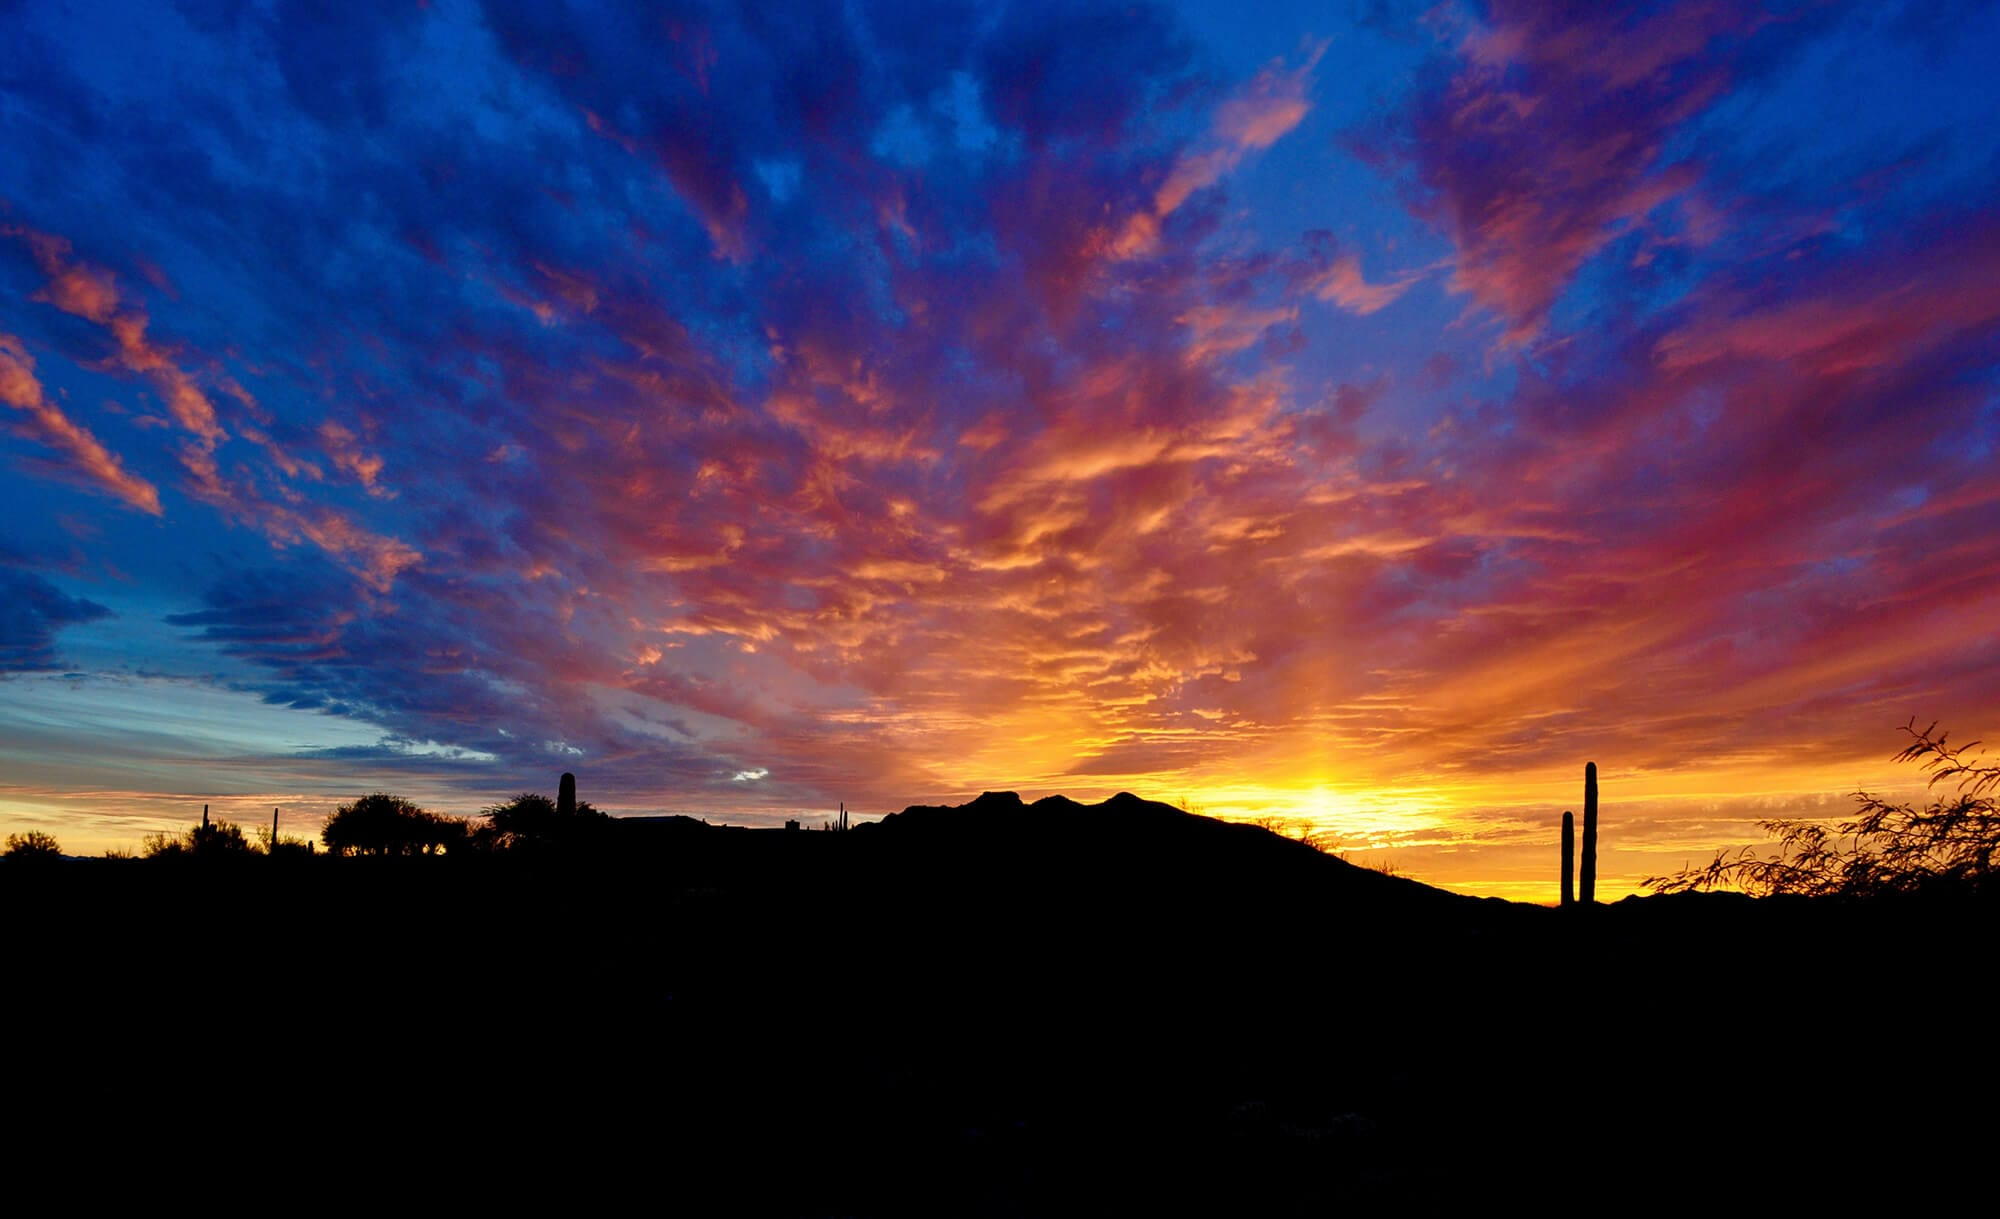 Arizona sunset over Black Mountain